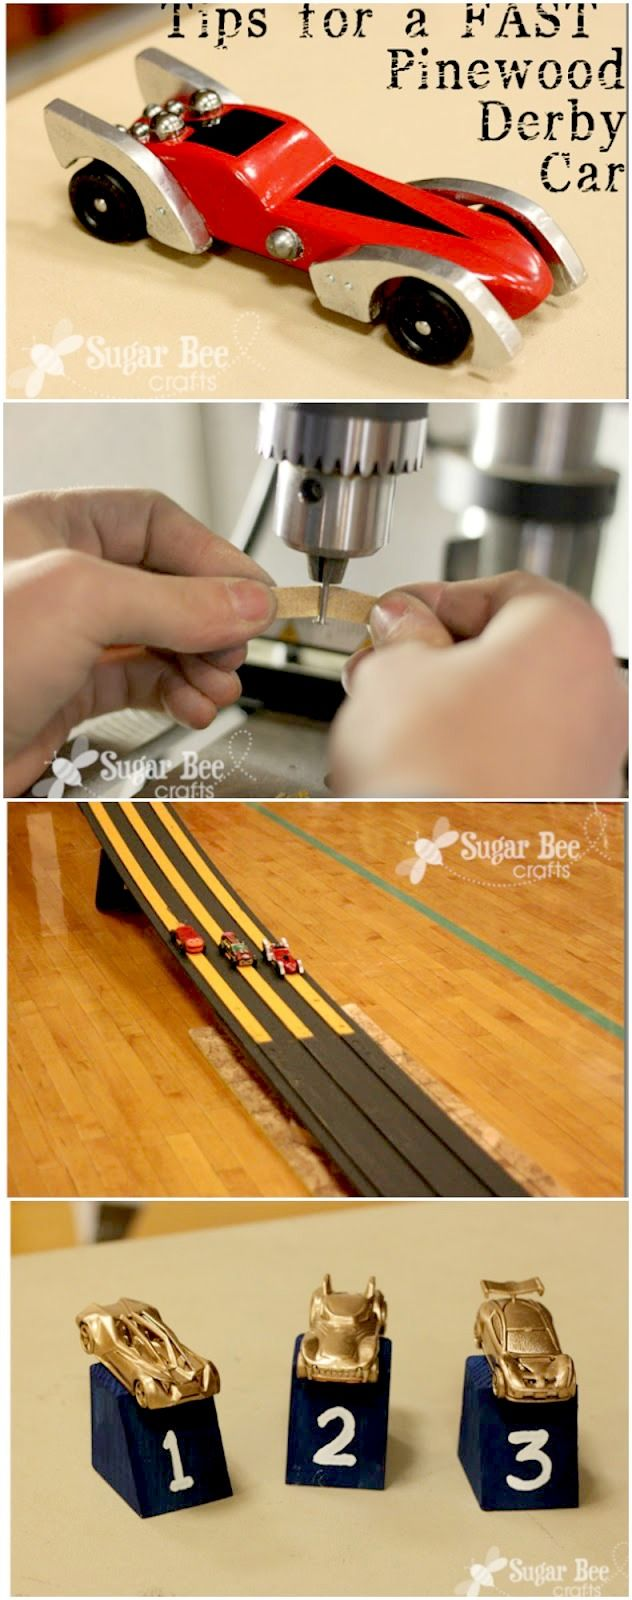 188 best Pinewood derby images on Pinterest